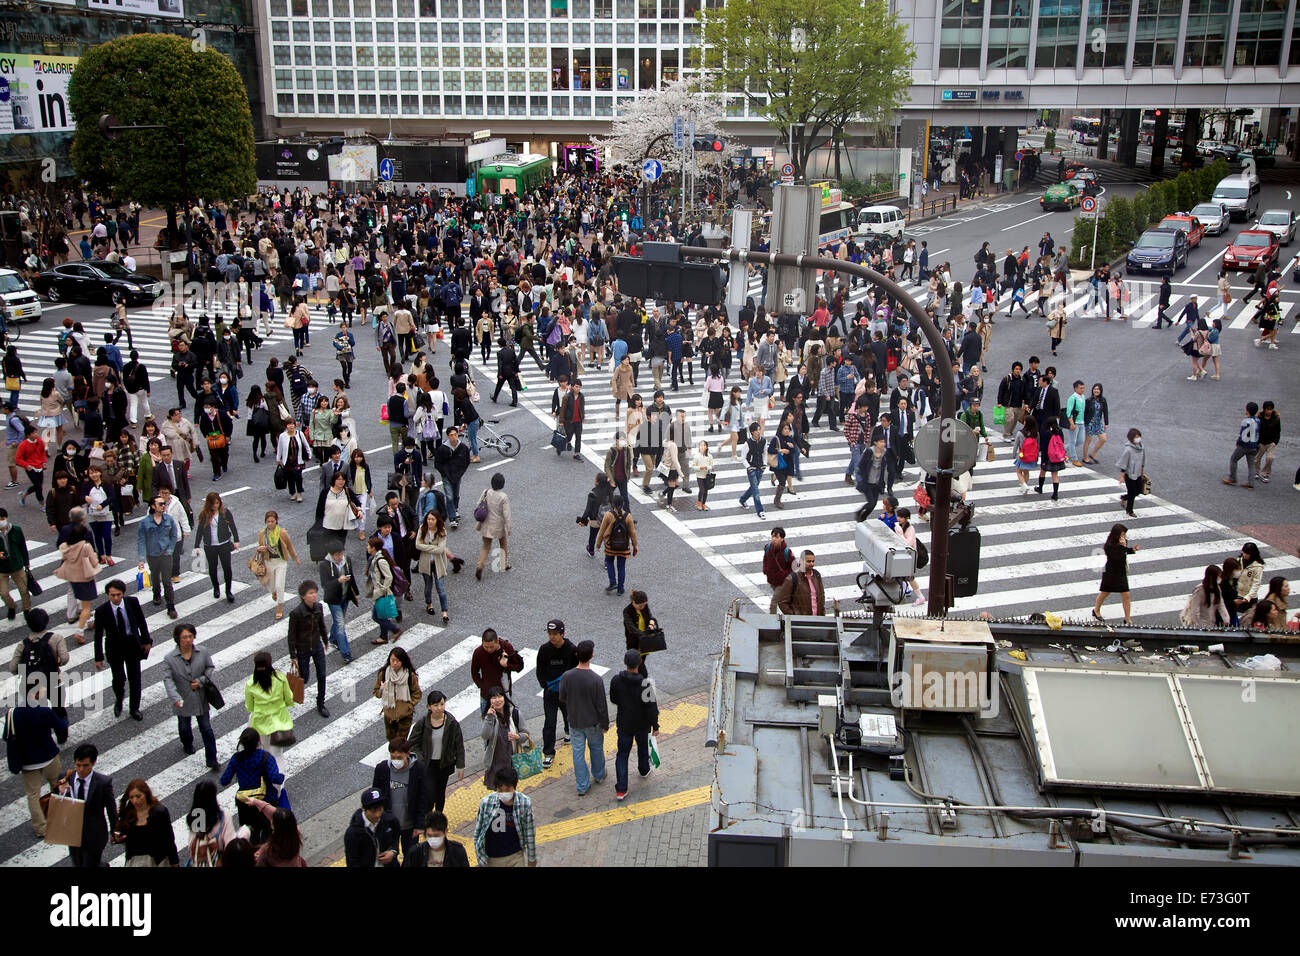 Is Shibuya Crossing The Busiest In The World